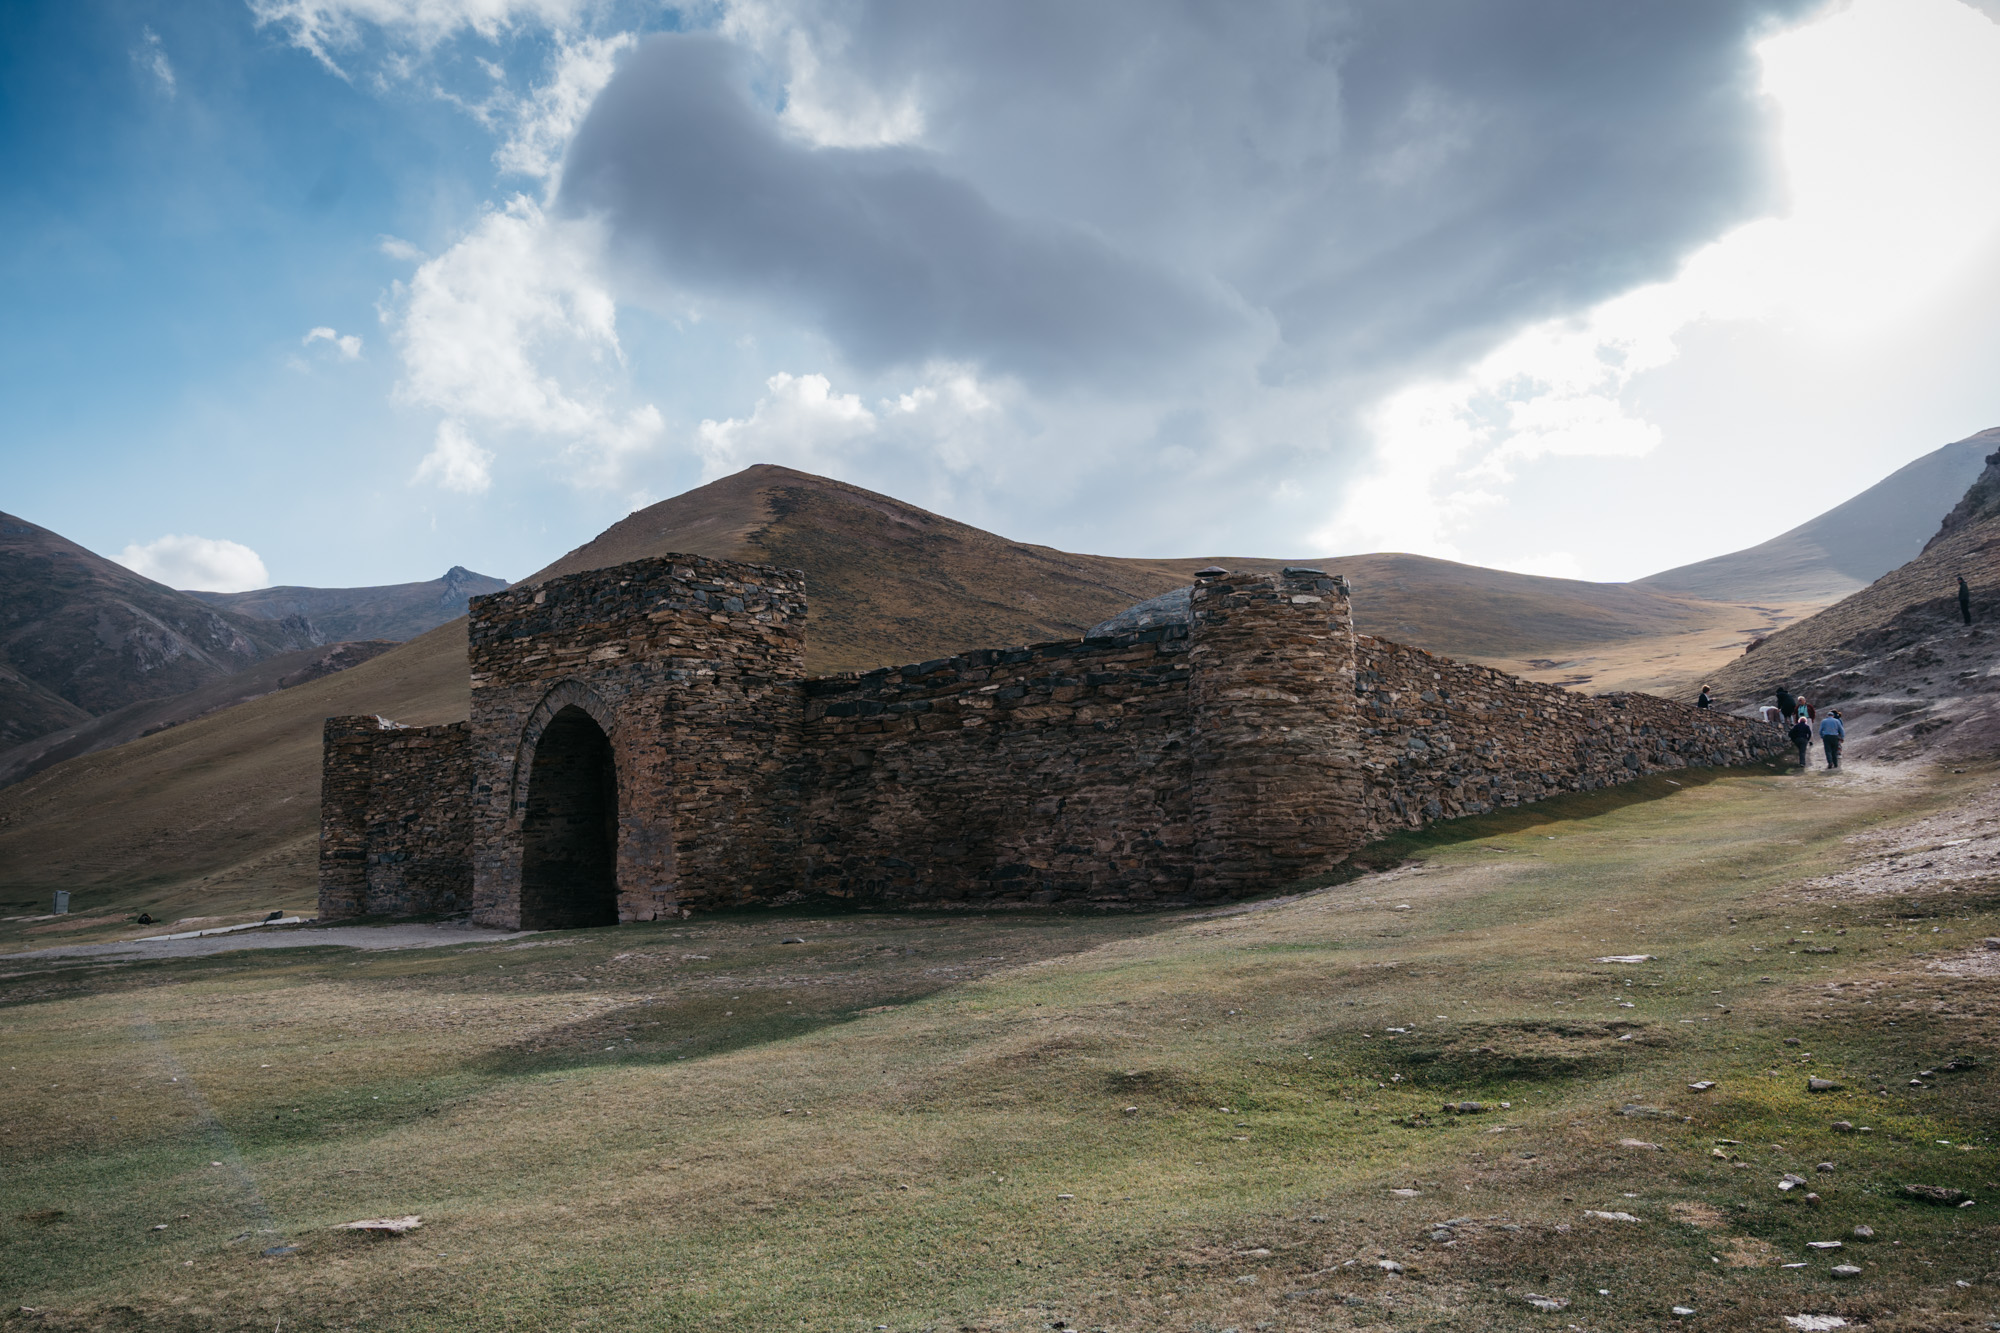 The front of the caravanserai.